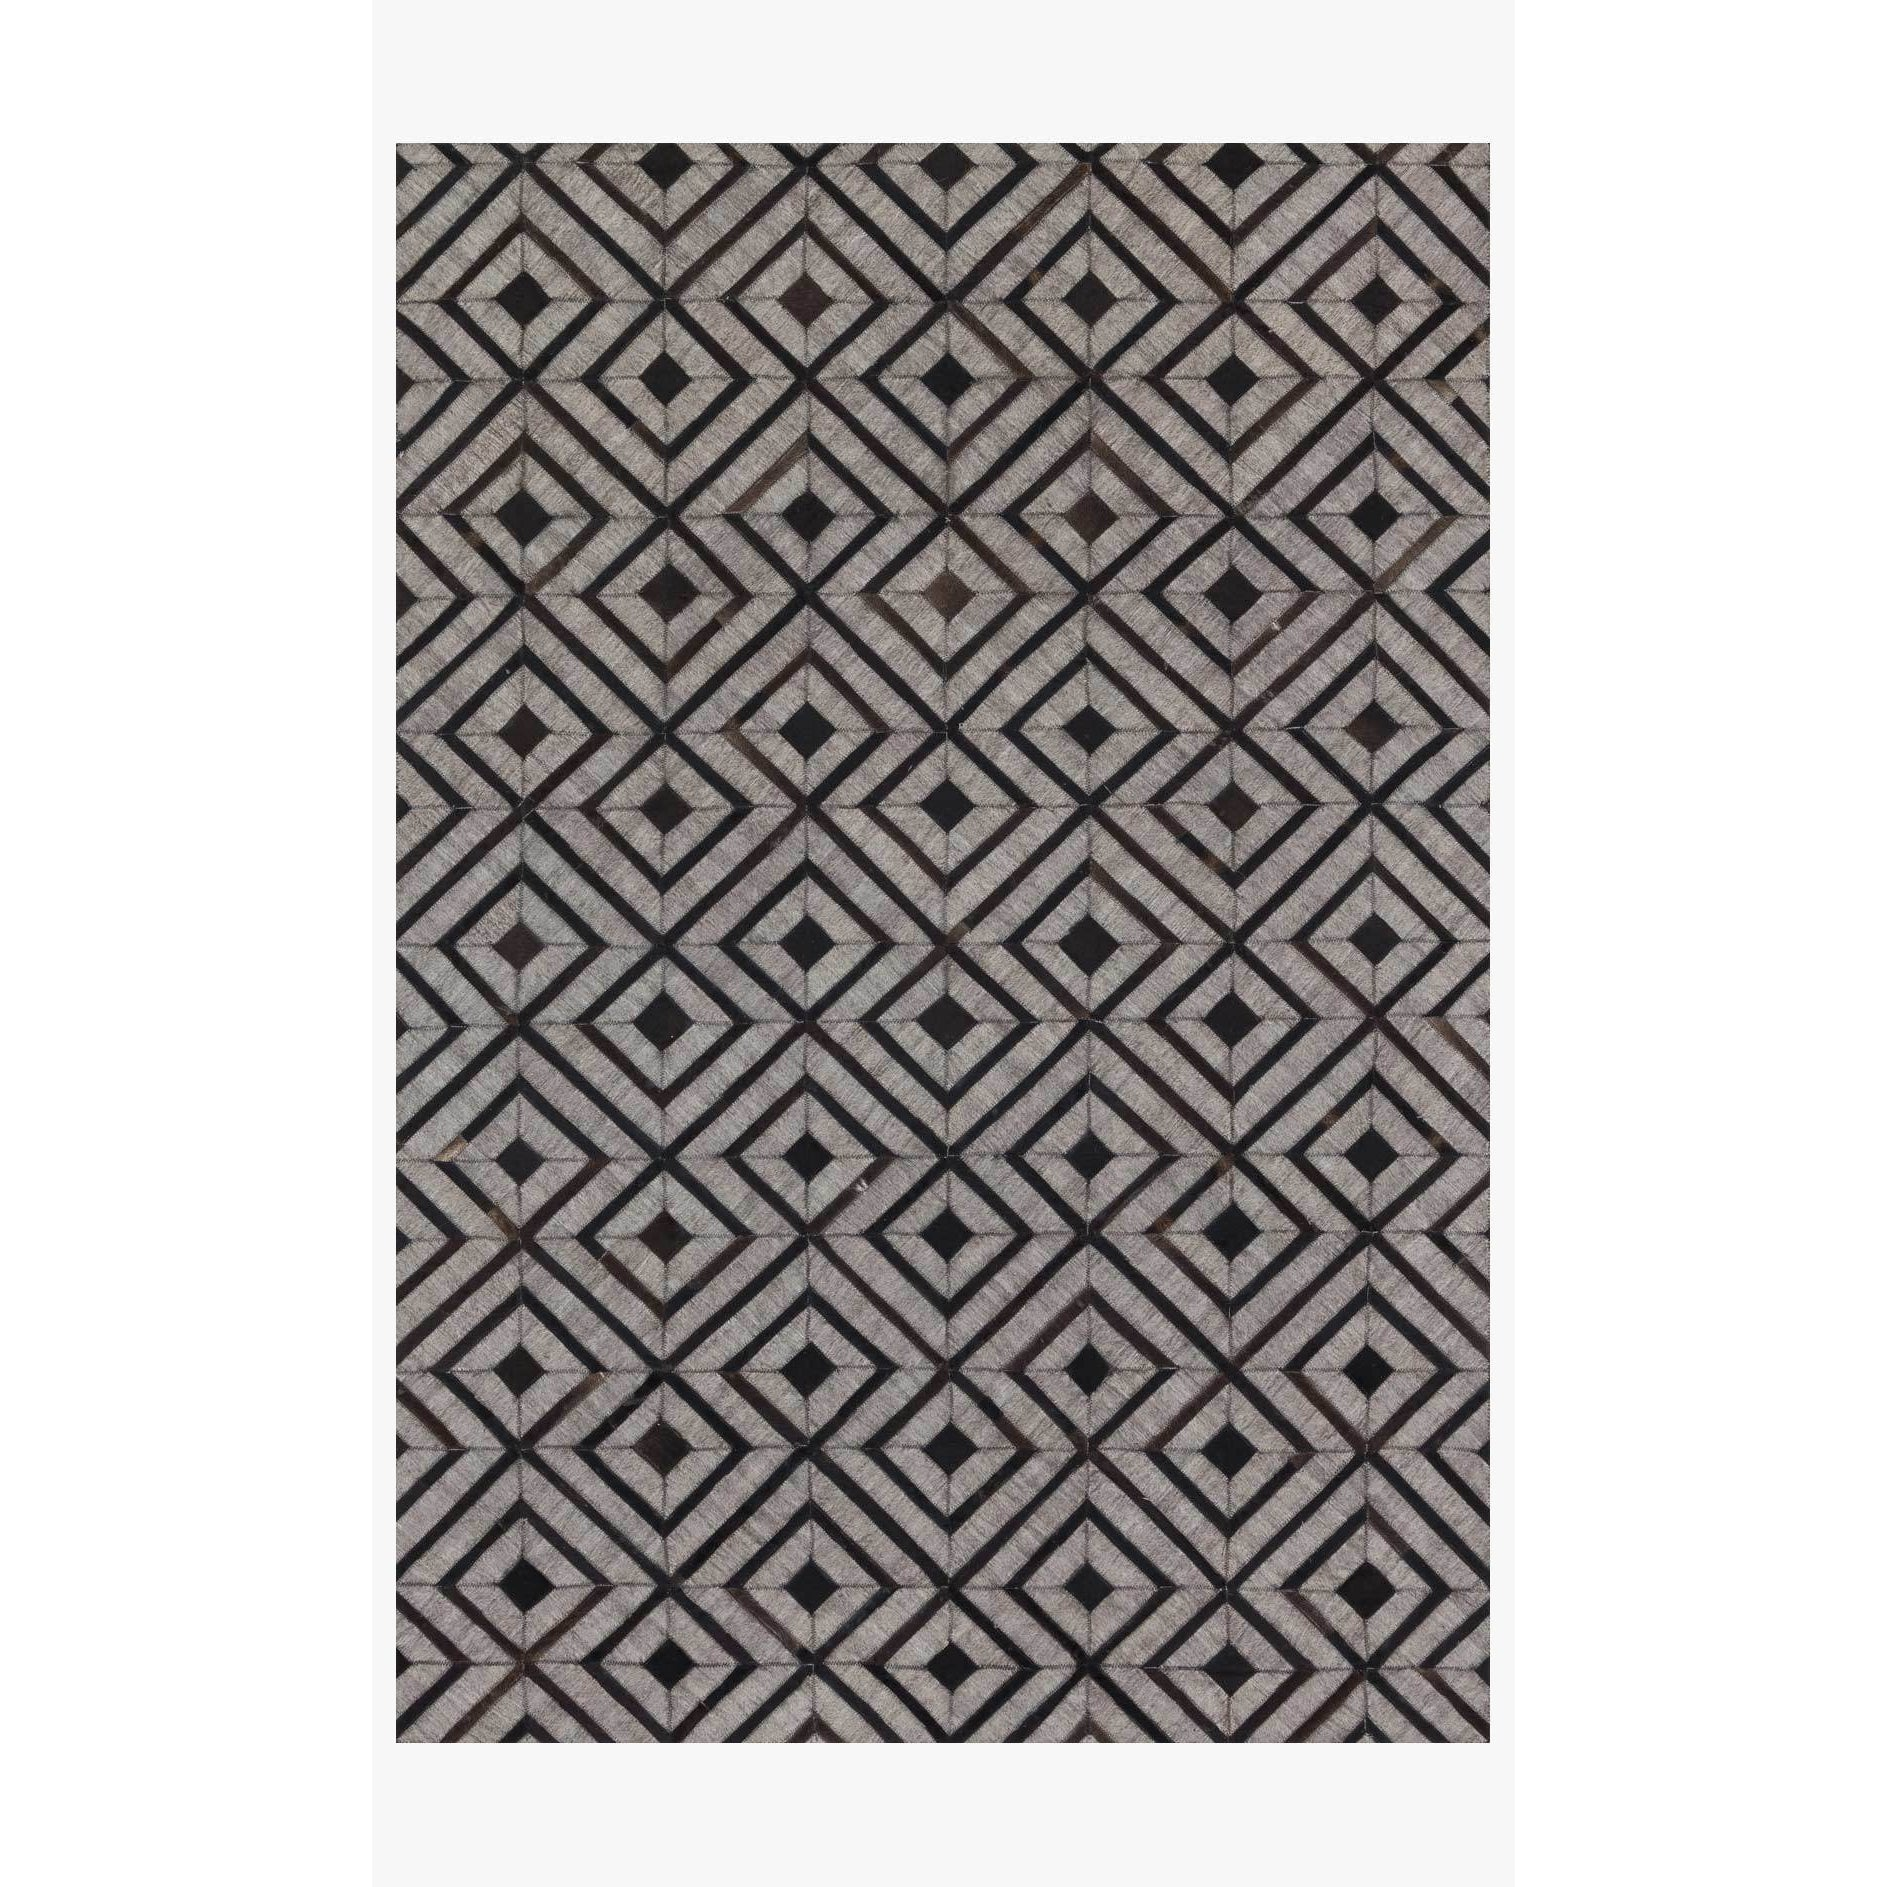 Dorado Rugs by Loloi - DB-02 - Beige / Expresso-Loloi Rugs-Blue Hand Home